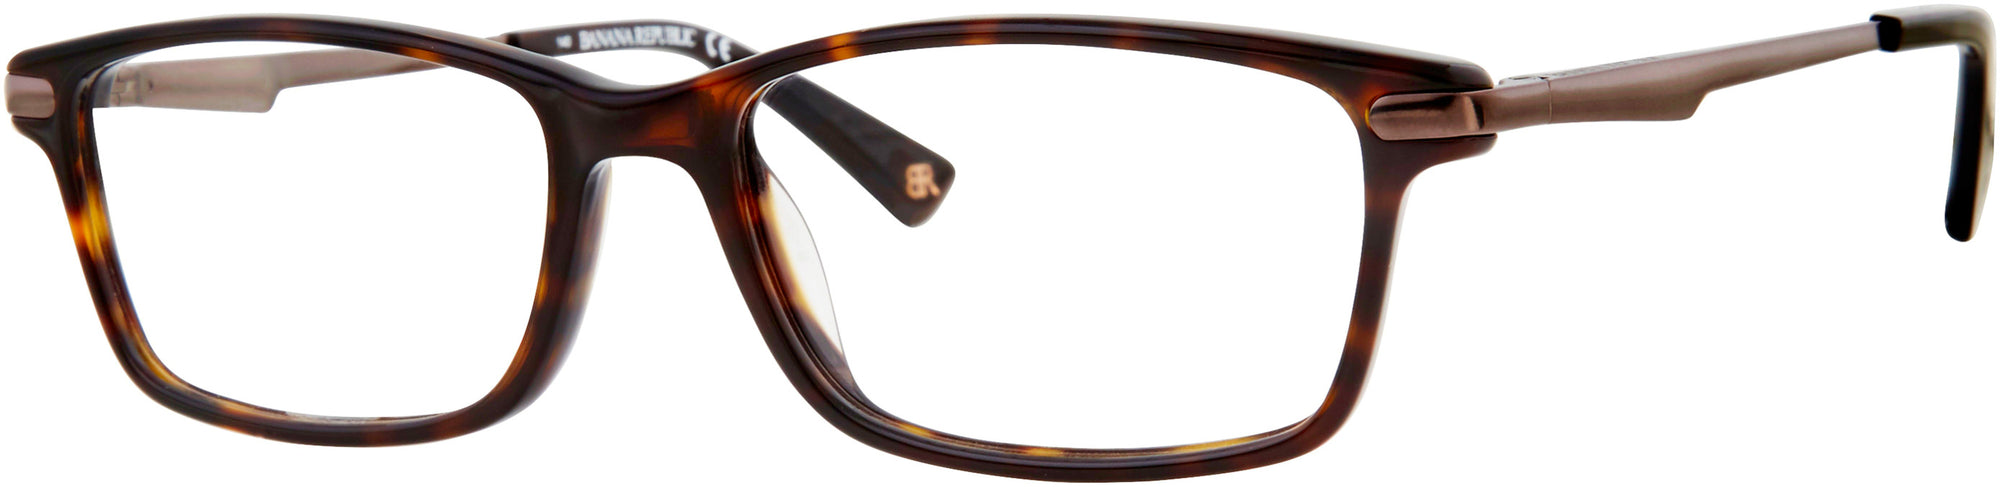 Banana Republic Bernard Rectangular Sunglasses 0086-0086  Dark Havana (00 Demo Lens)